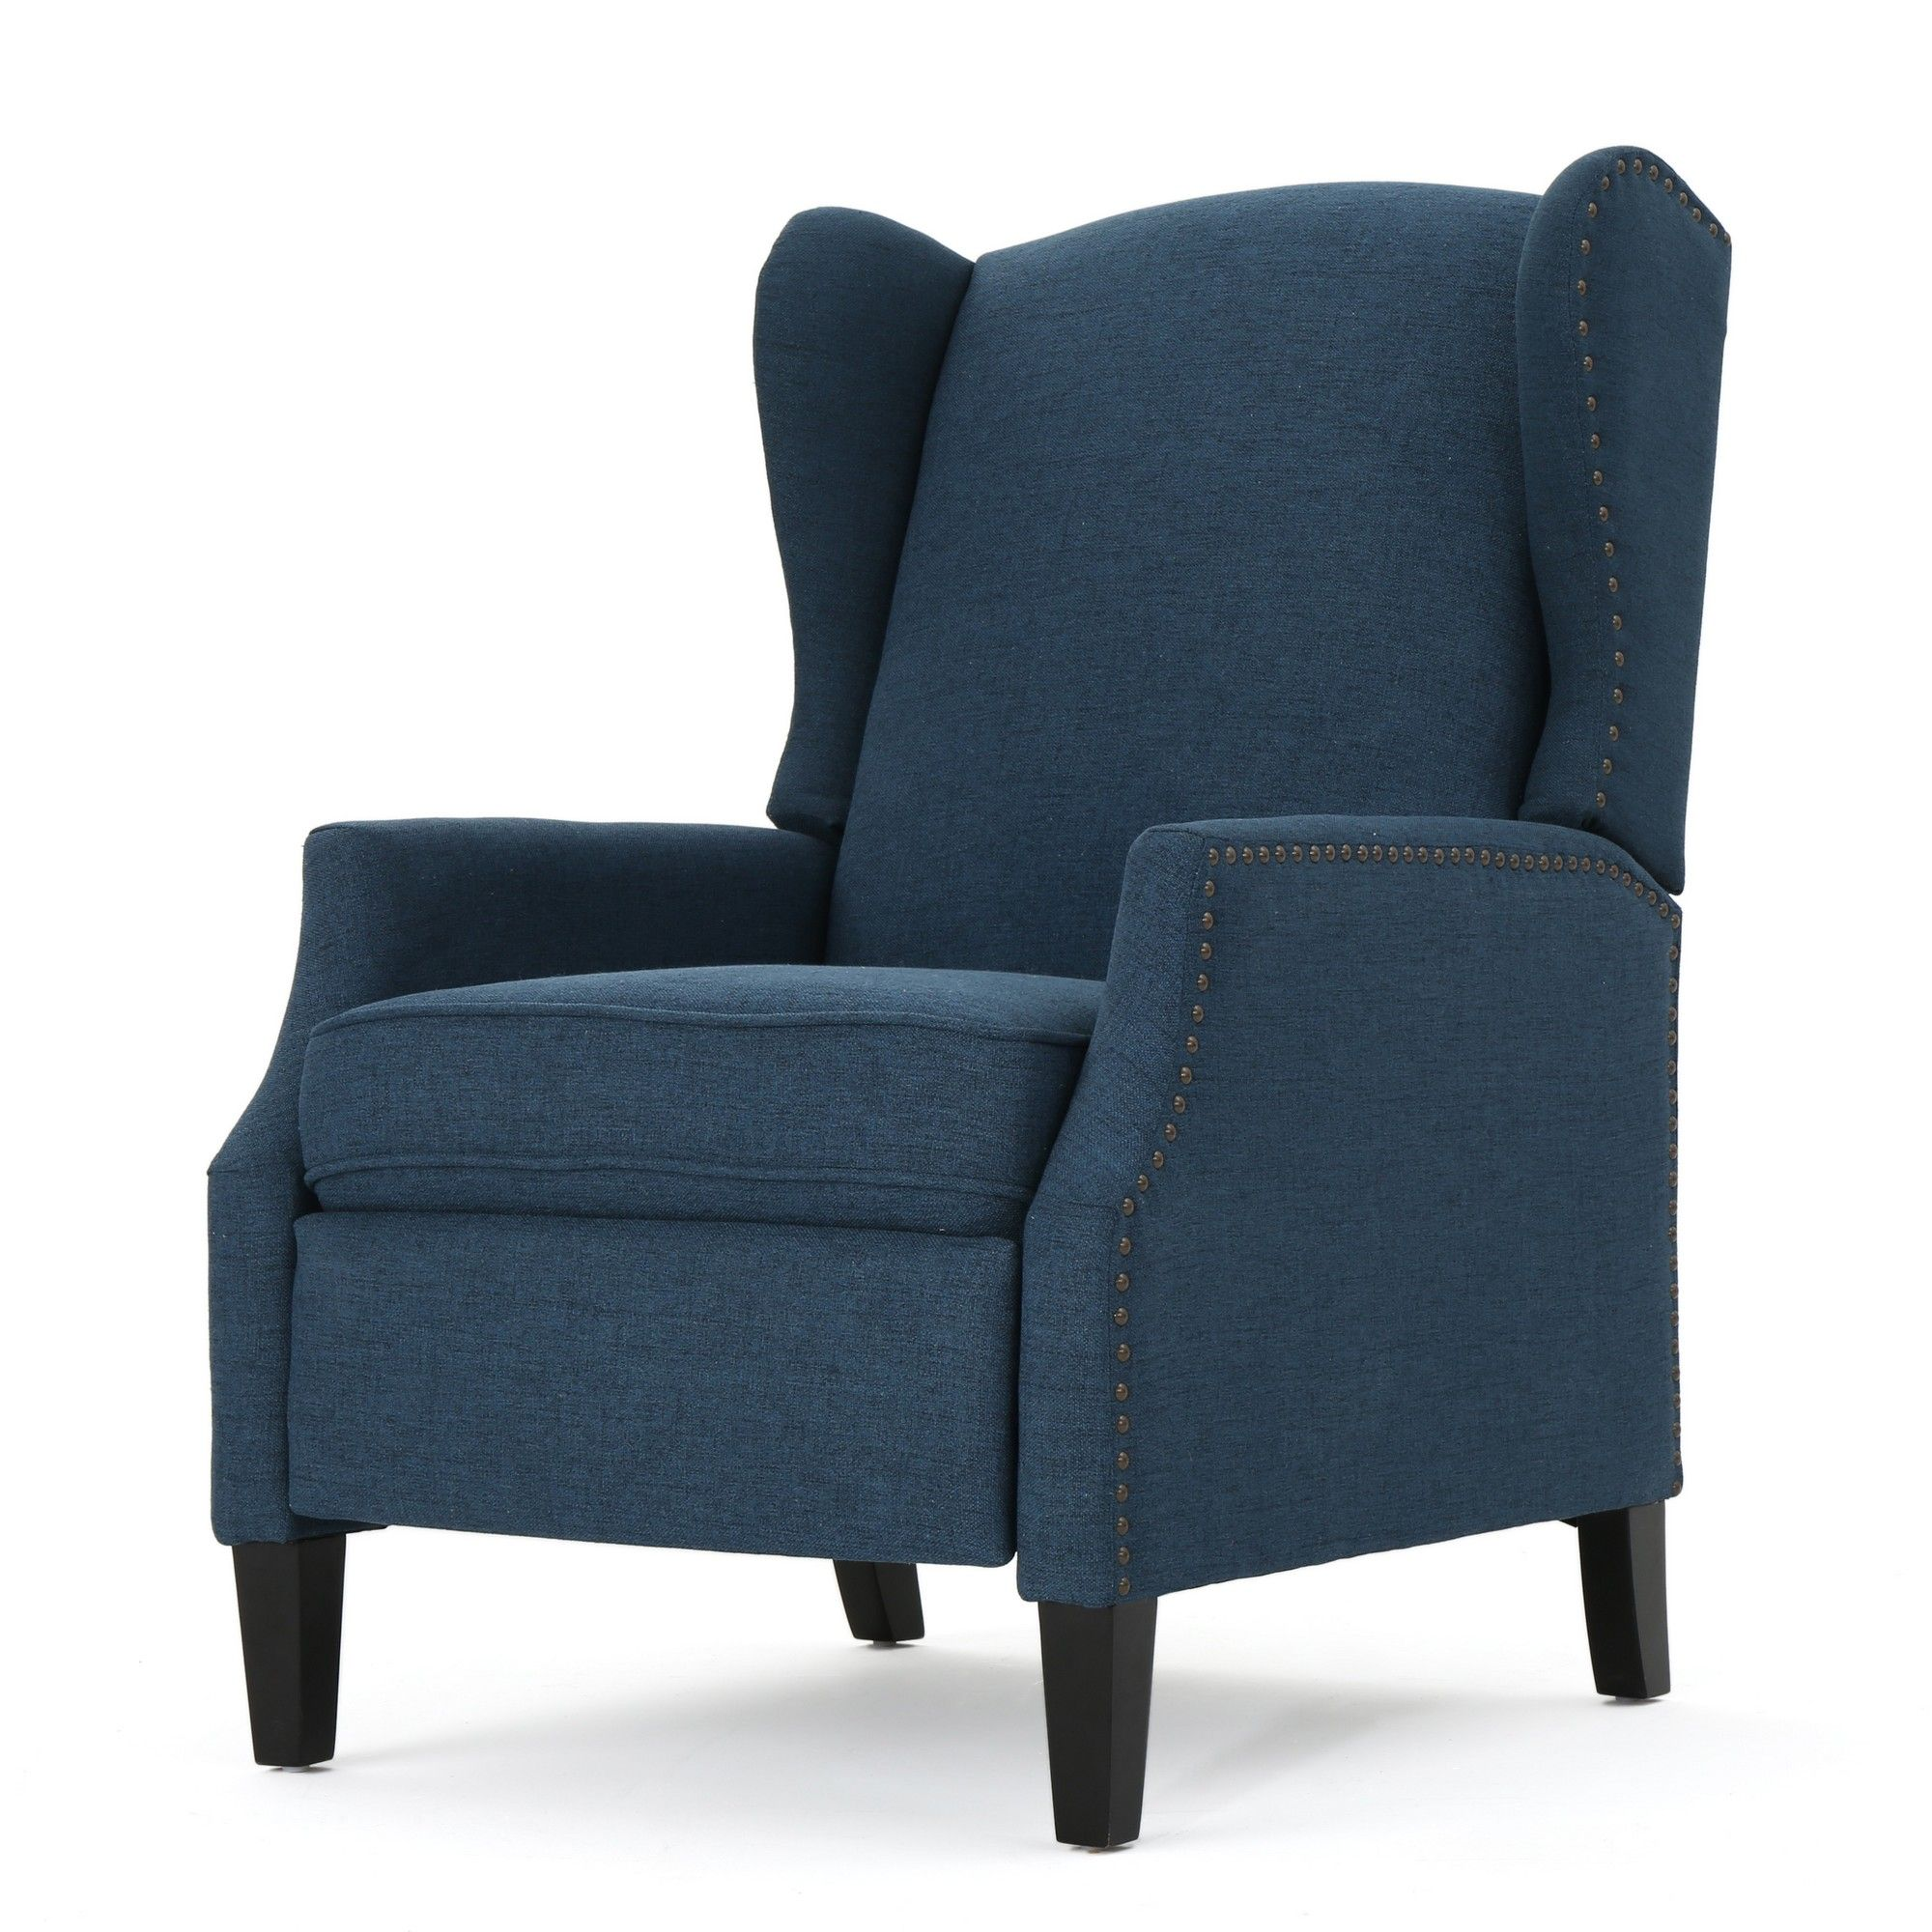 Wescott traditional recliner navy blue christopher knight home